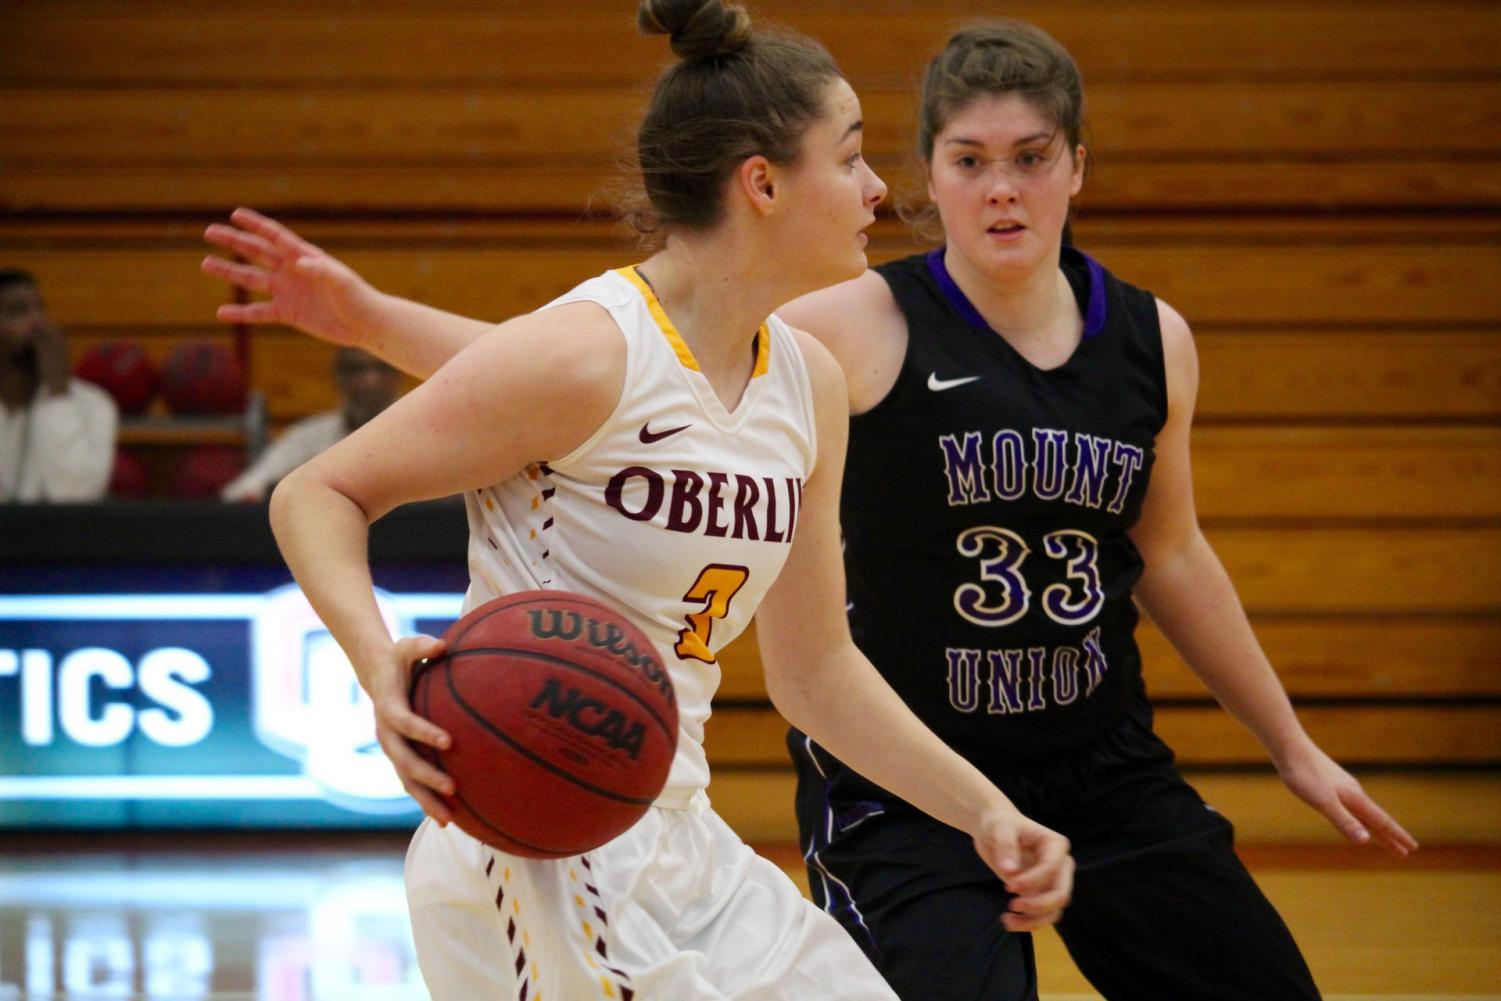 Sophomore guard Ally Driscoll tries to move the ball past a defender in last season's Nov. 28 loss to the University of Mount Union Purple Raiders. Wednesday, she scored a team-high 14 points in their 44–65 season opening loss to the Purple Raiders.